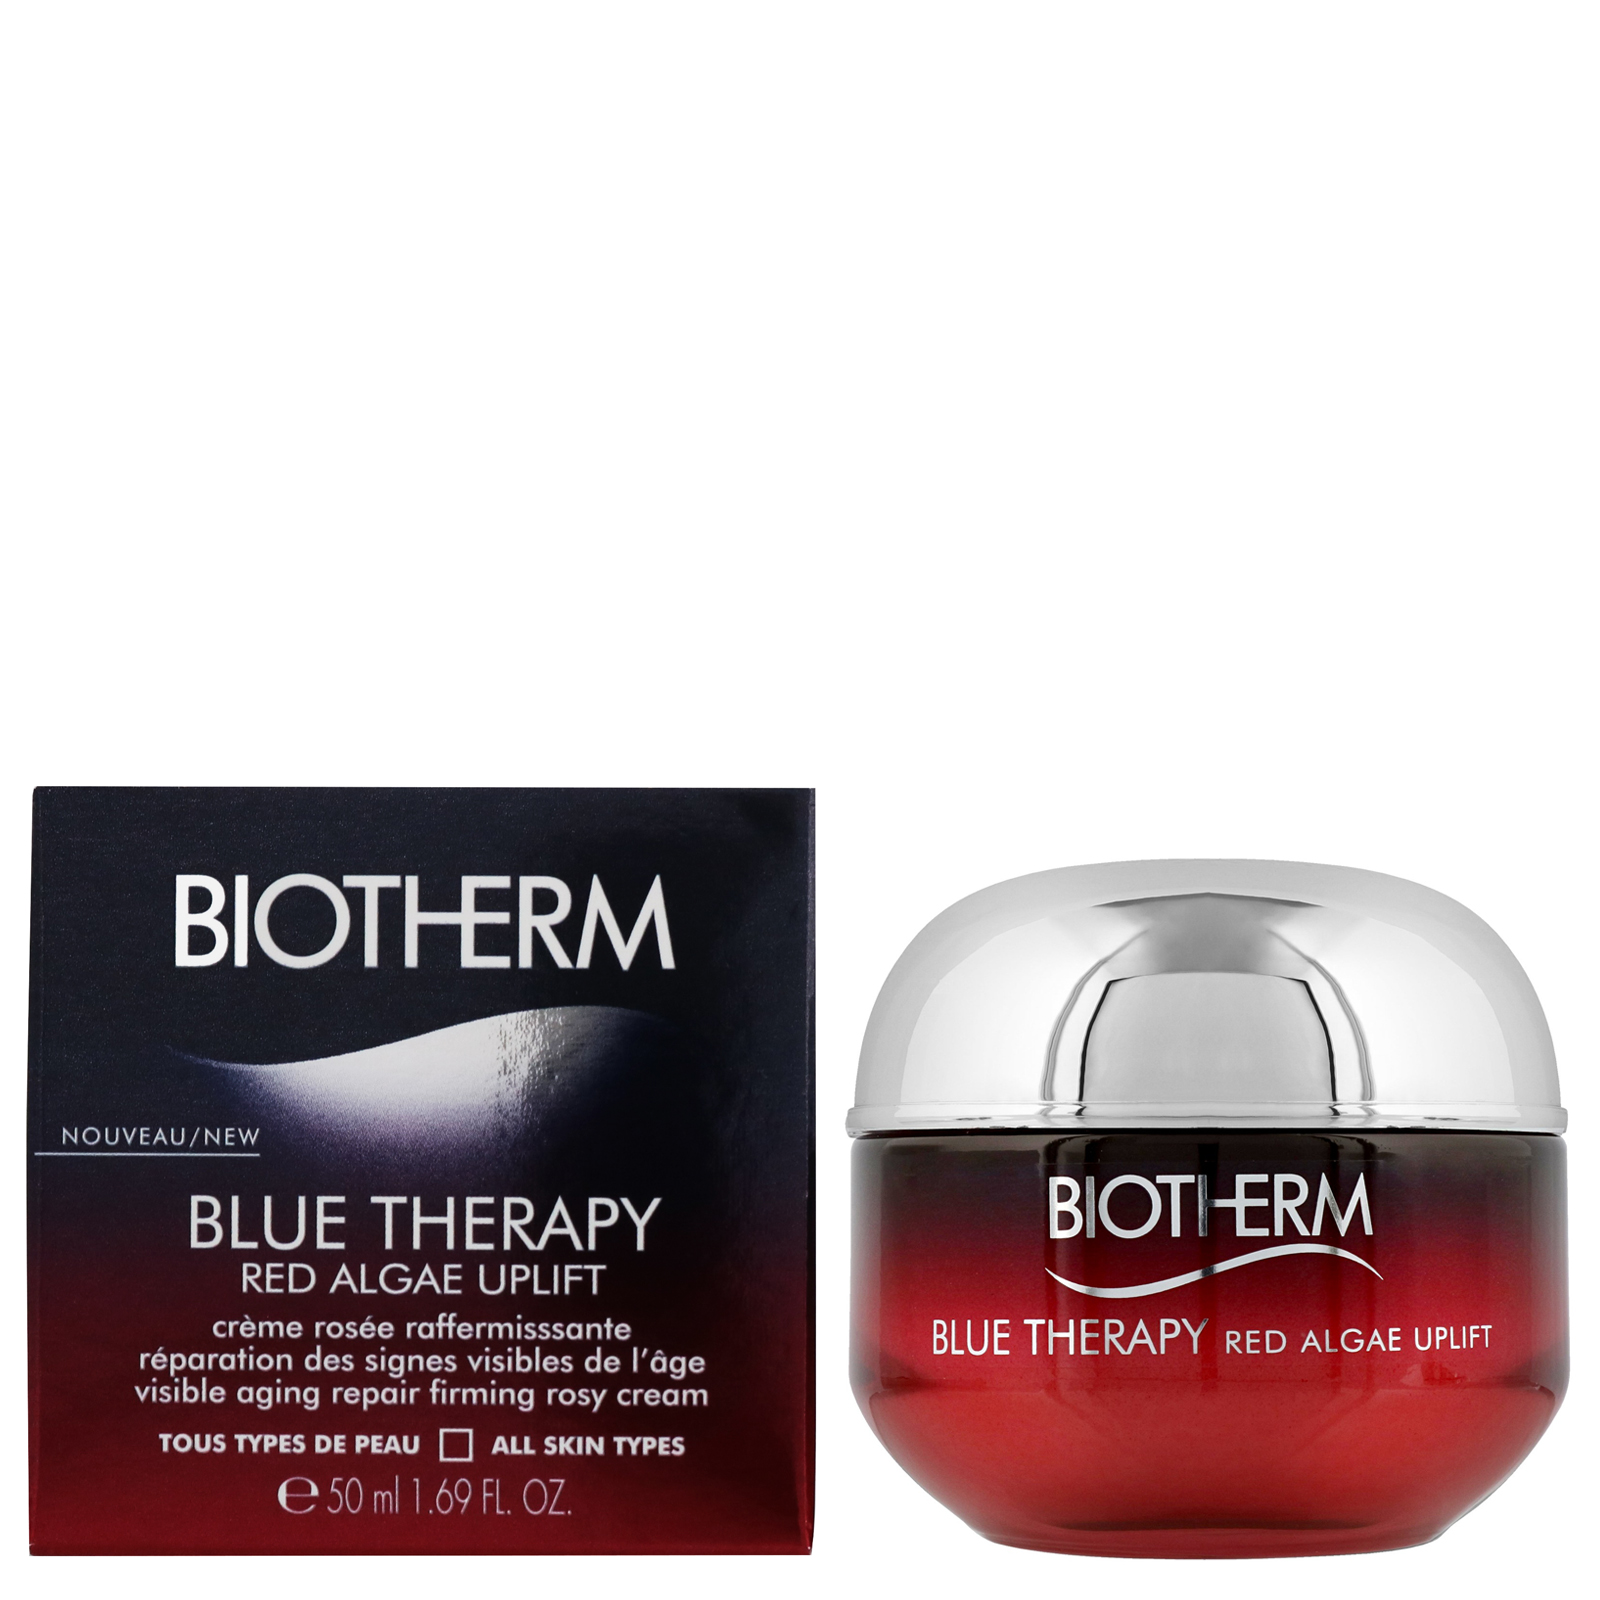 Biotherm Blue Therapy Red Algae Uplift krém 50 ml